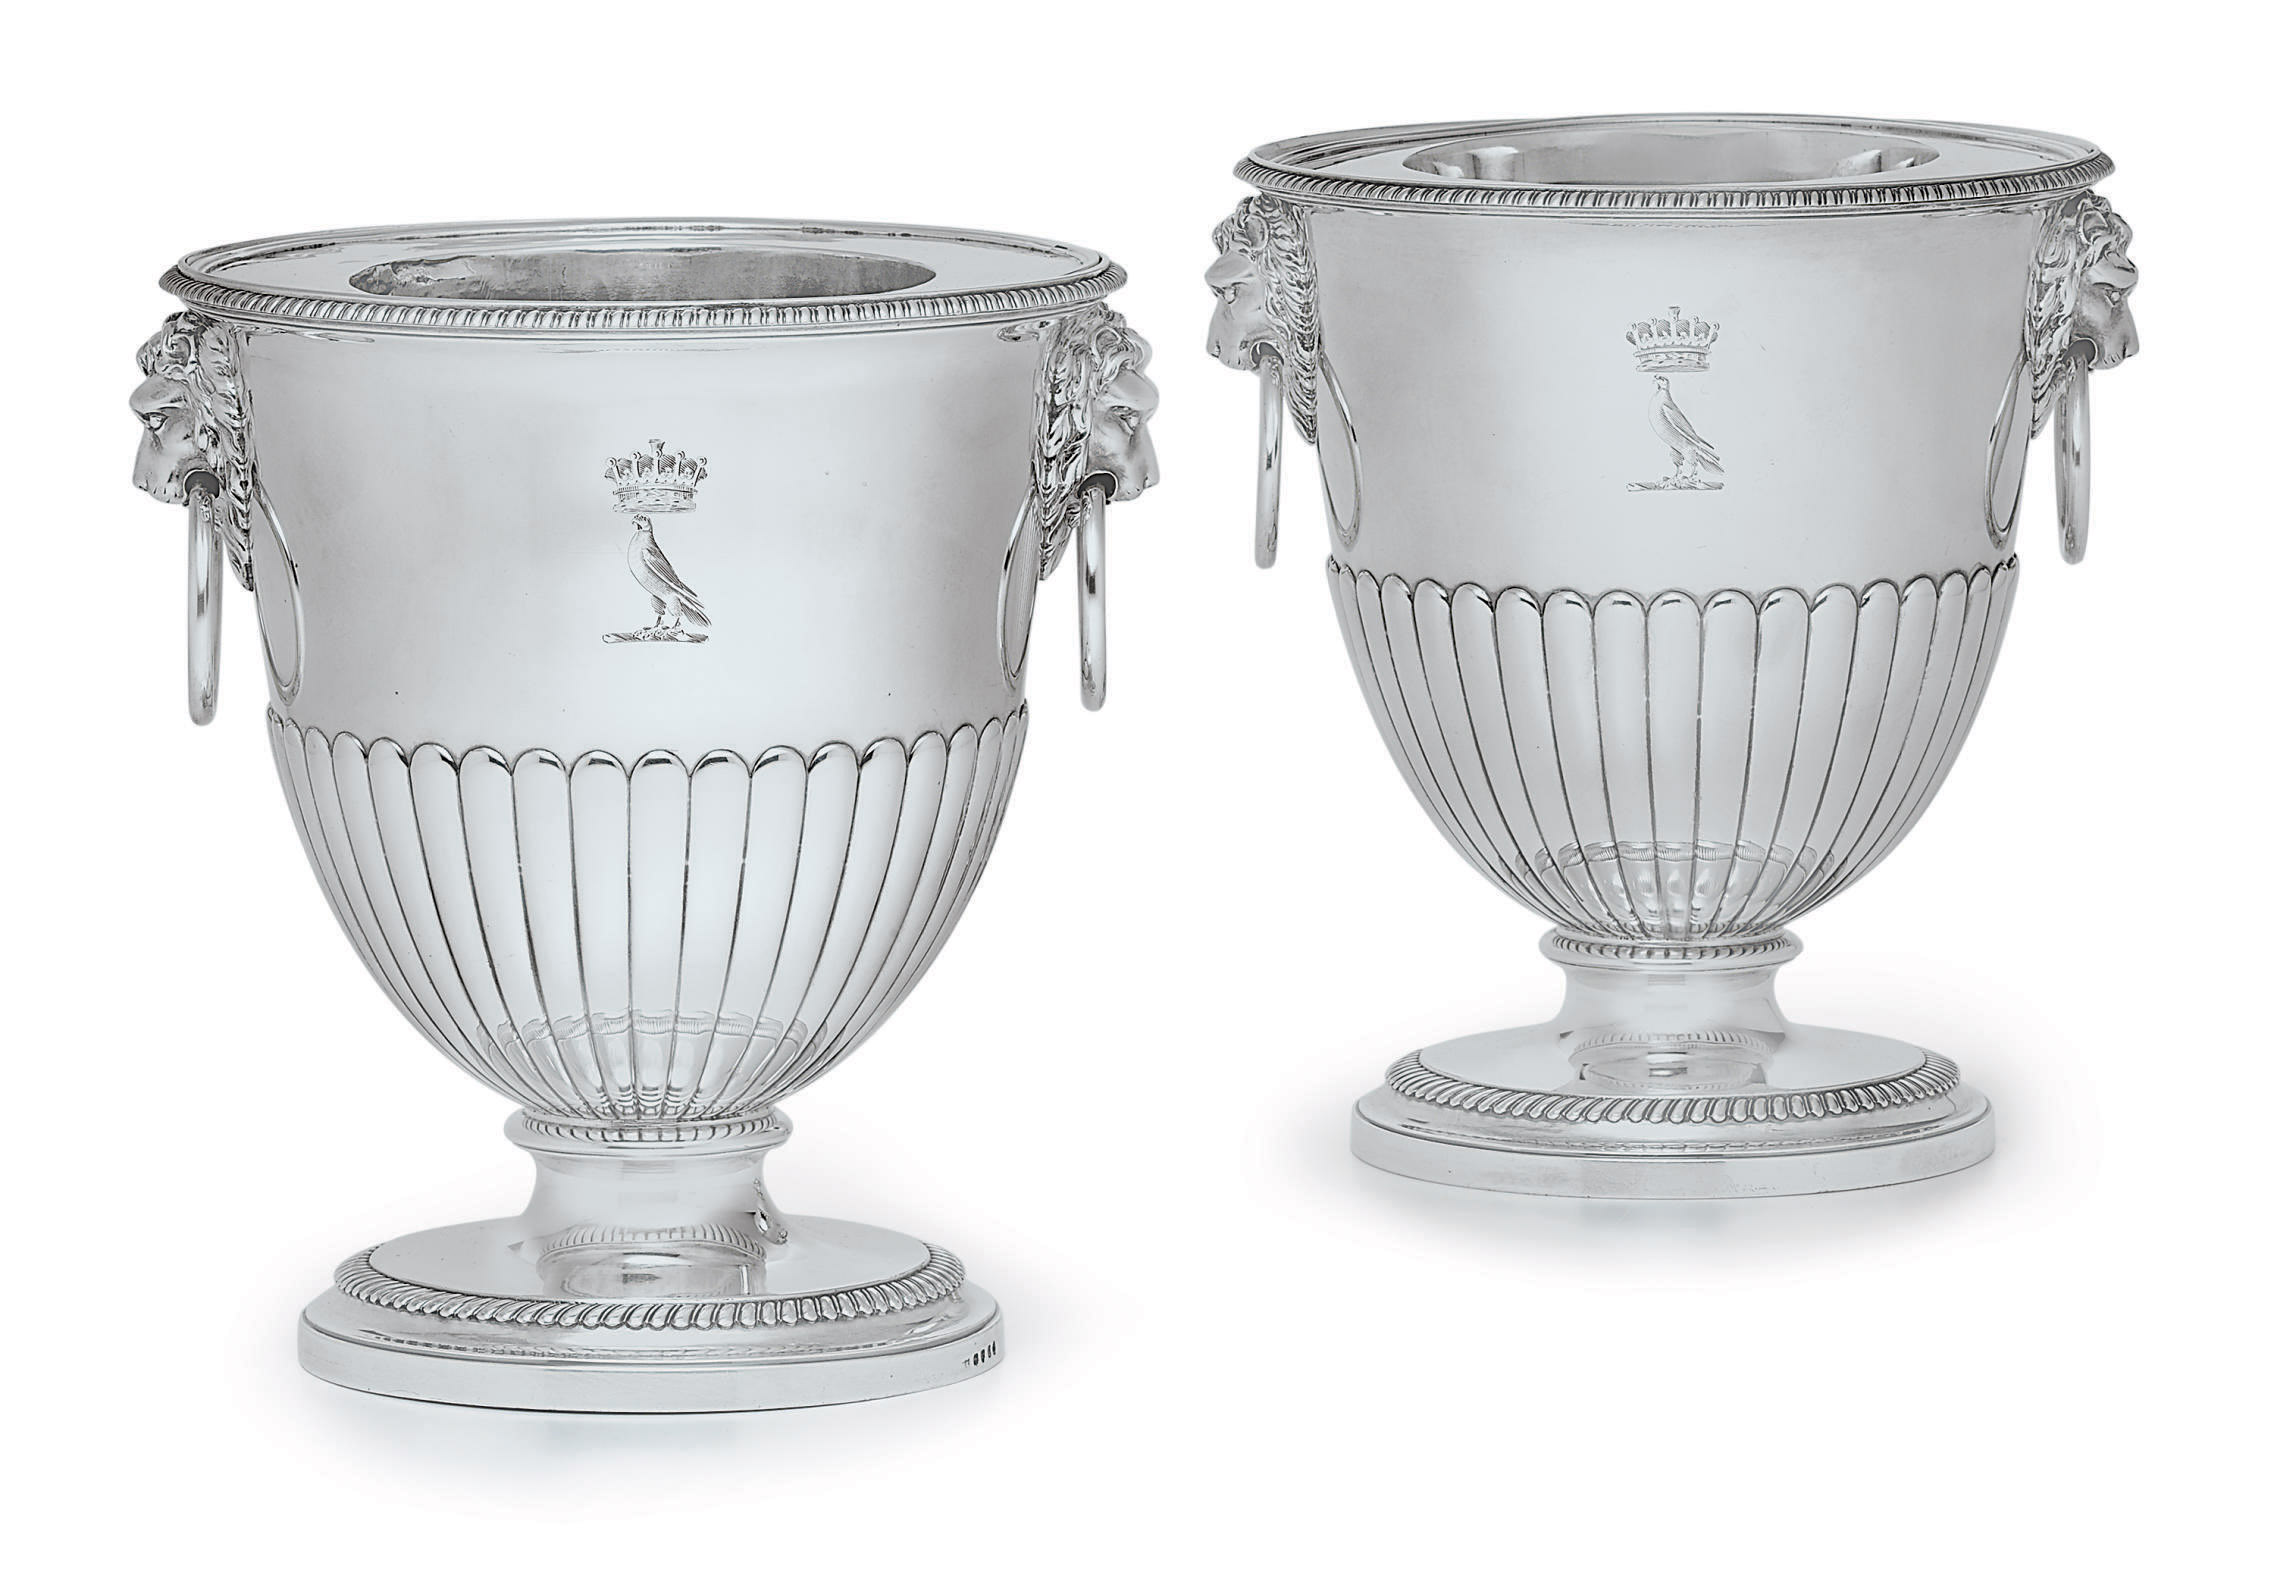 A PAIR OF GEORGE III SILVER WINE COOLERS